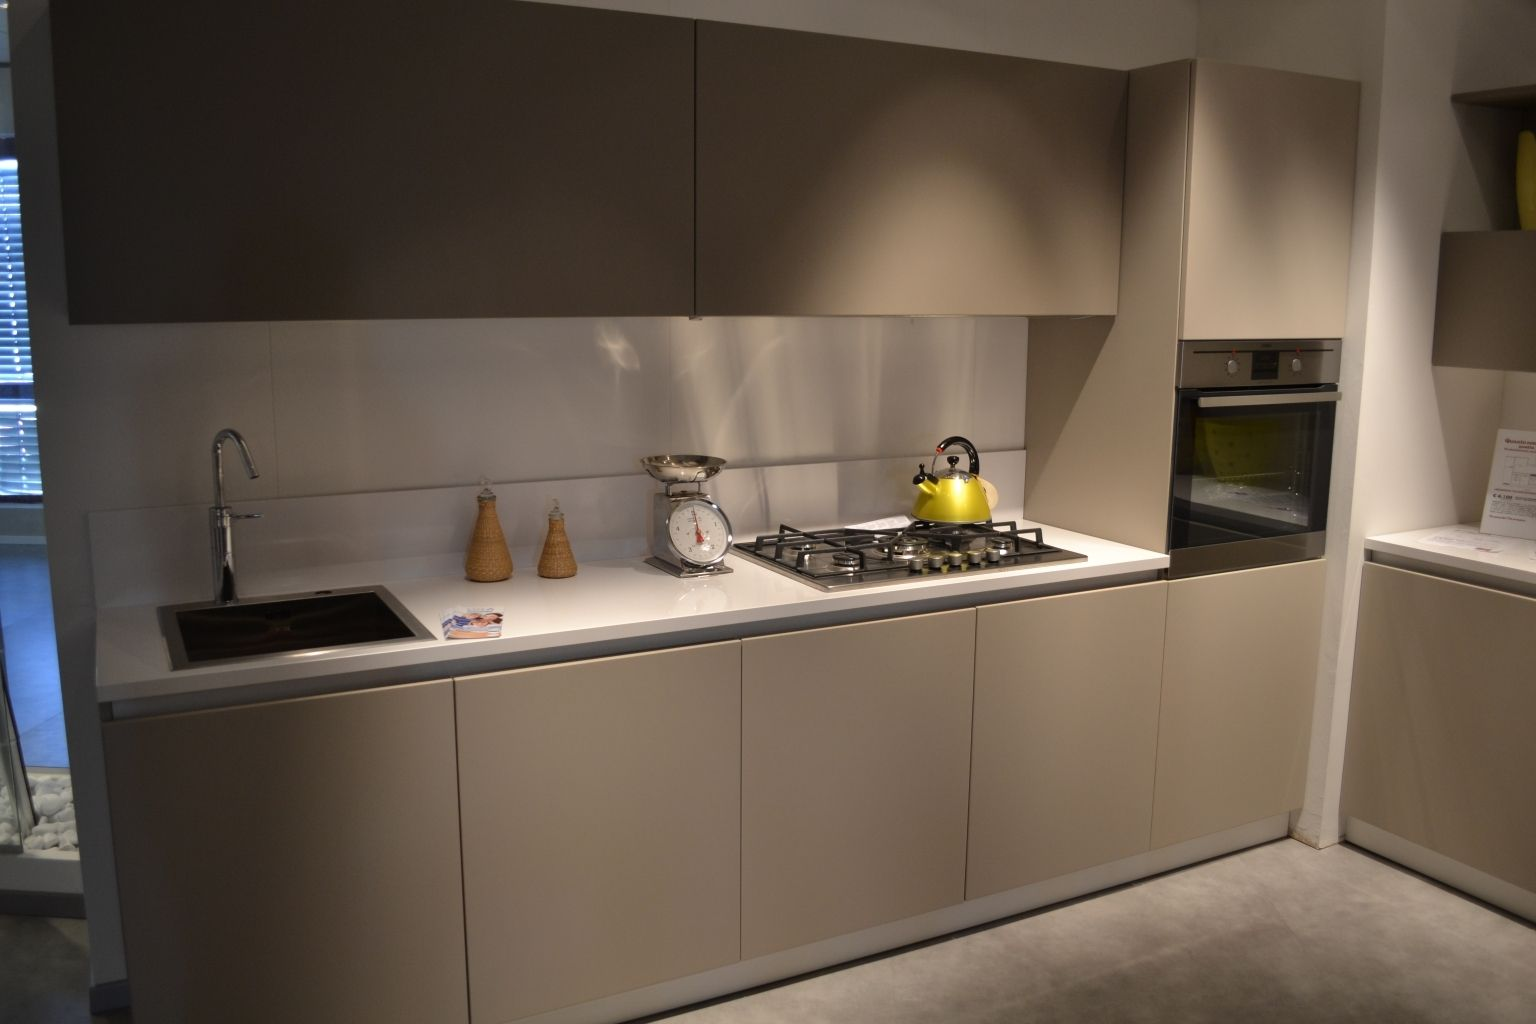 Awesome Cucina Color Tortora Gallery Mosquee Rodez Com ...